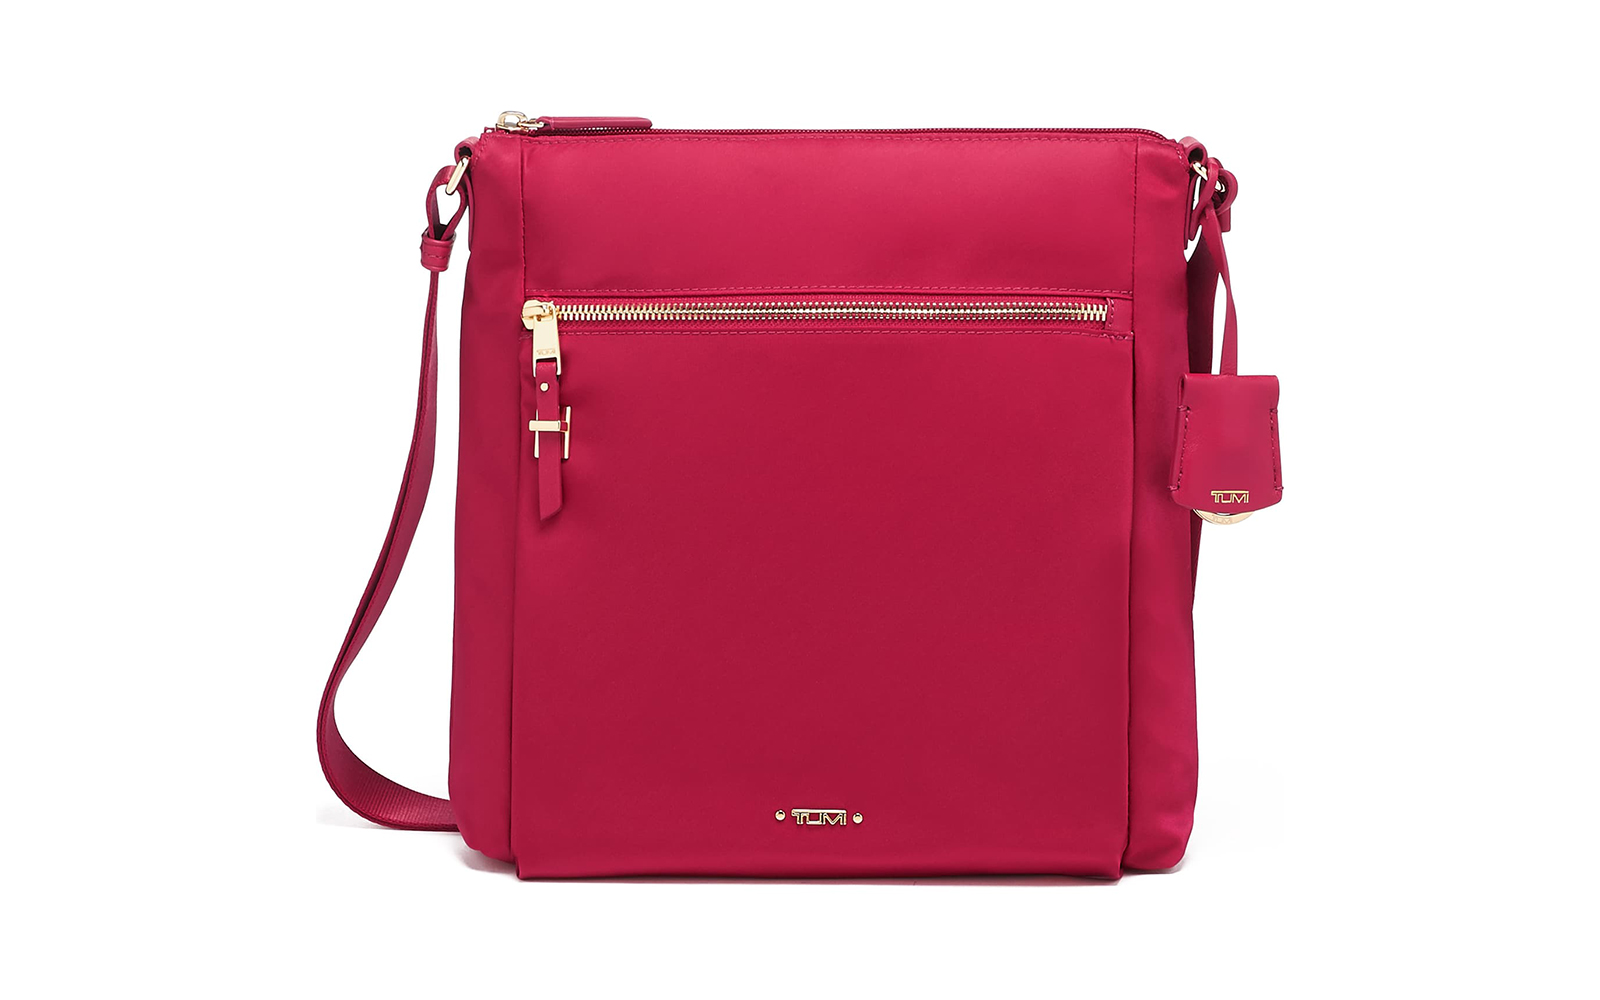 Tumi Voyageur - Canton Nylon Crossbody Bag